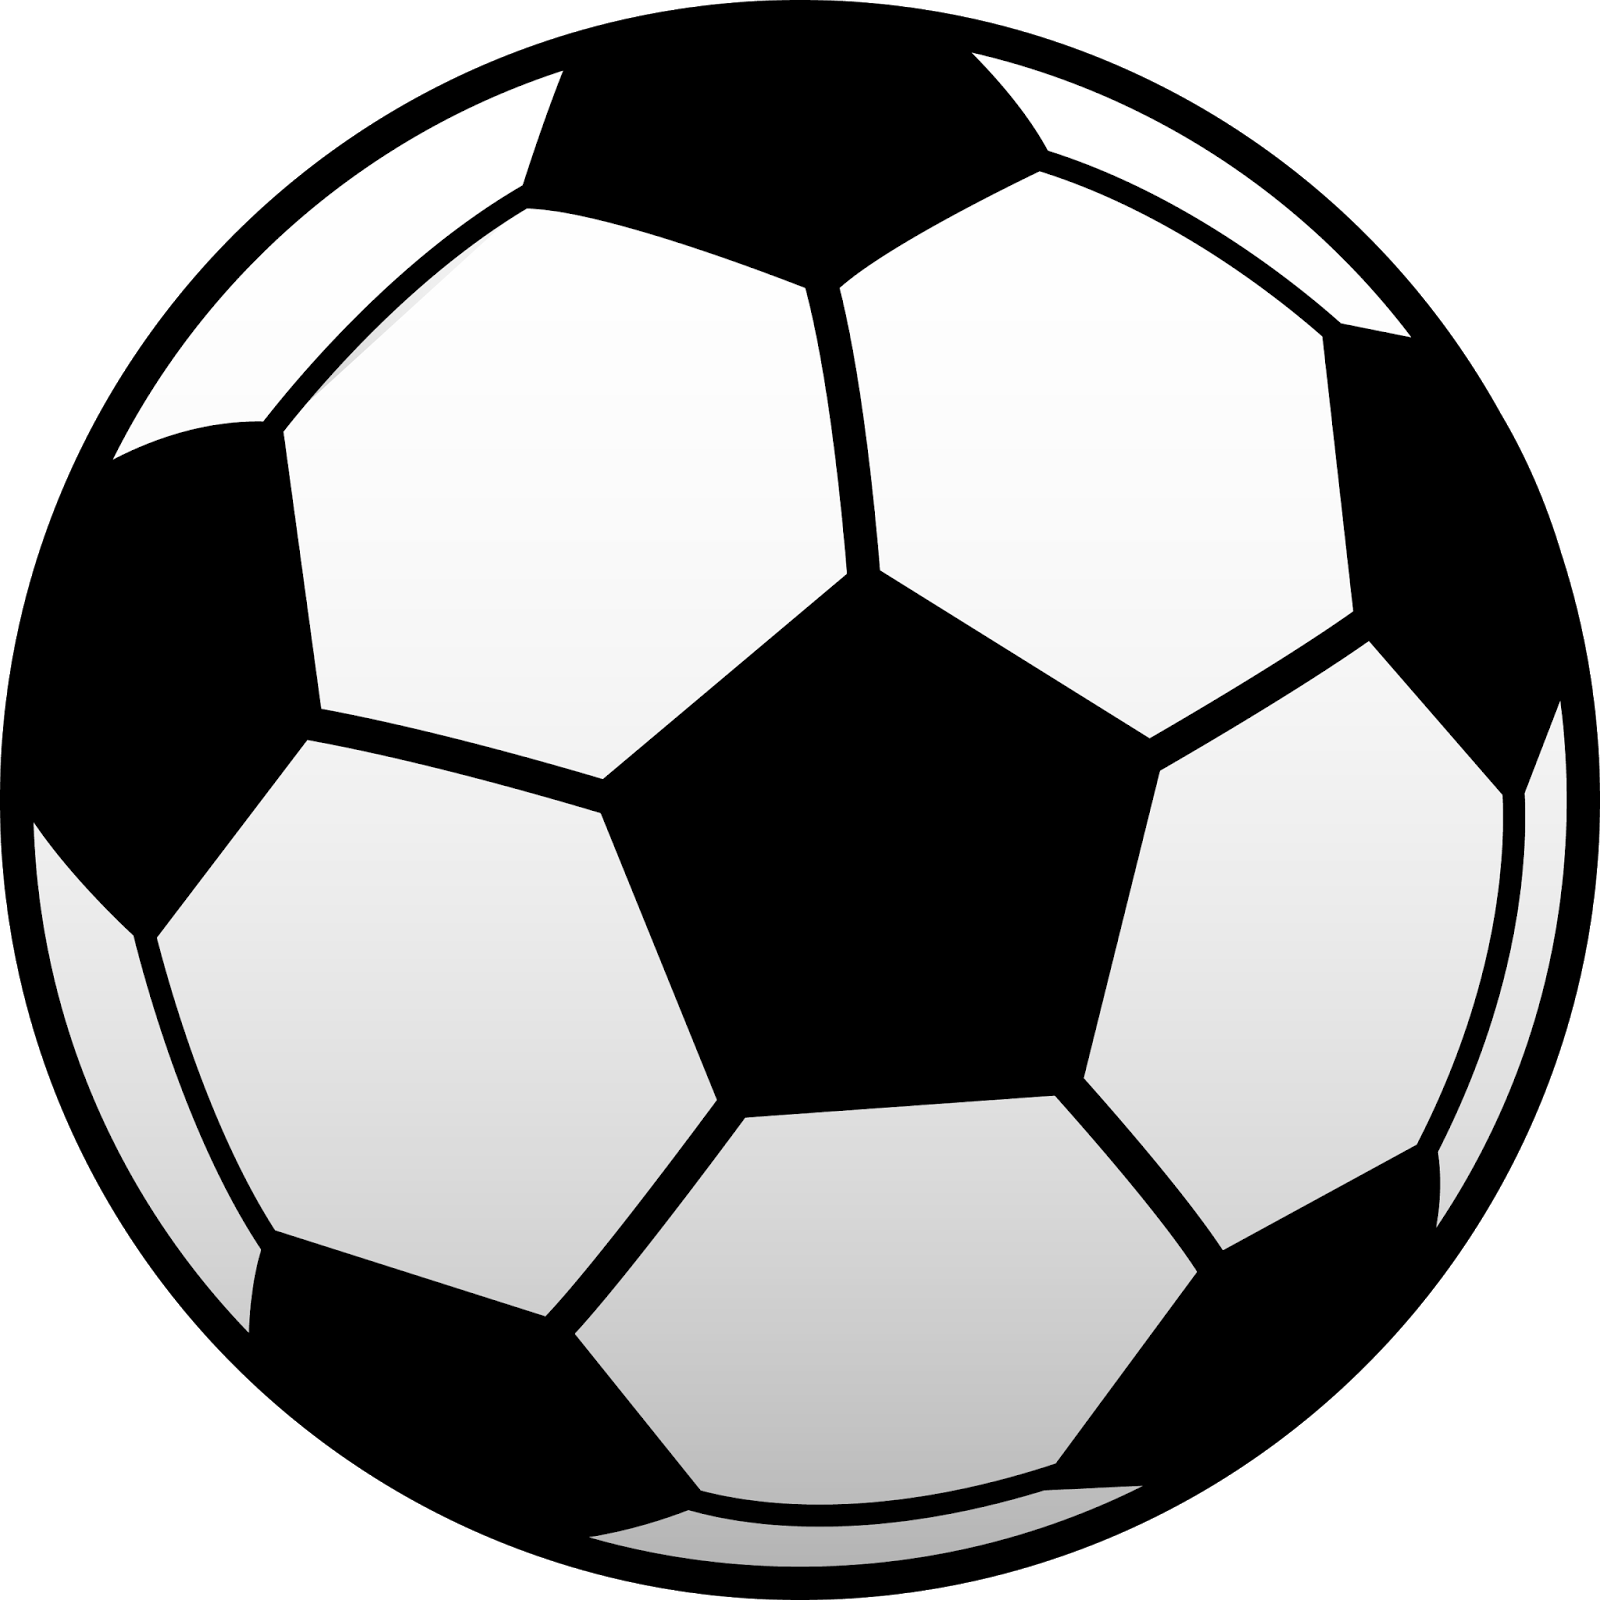 How To Draw A Football Step By Step Guide Glo Support